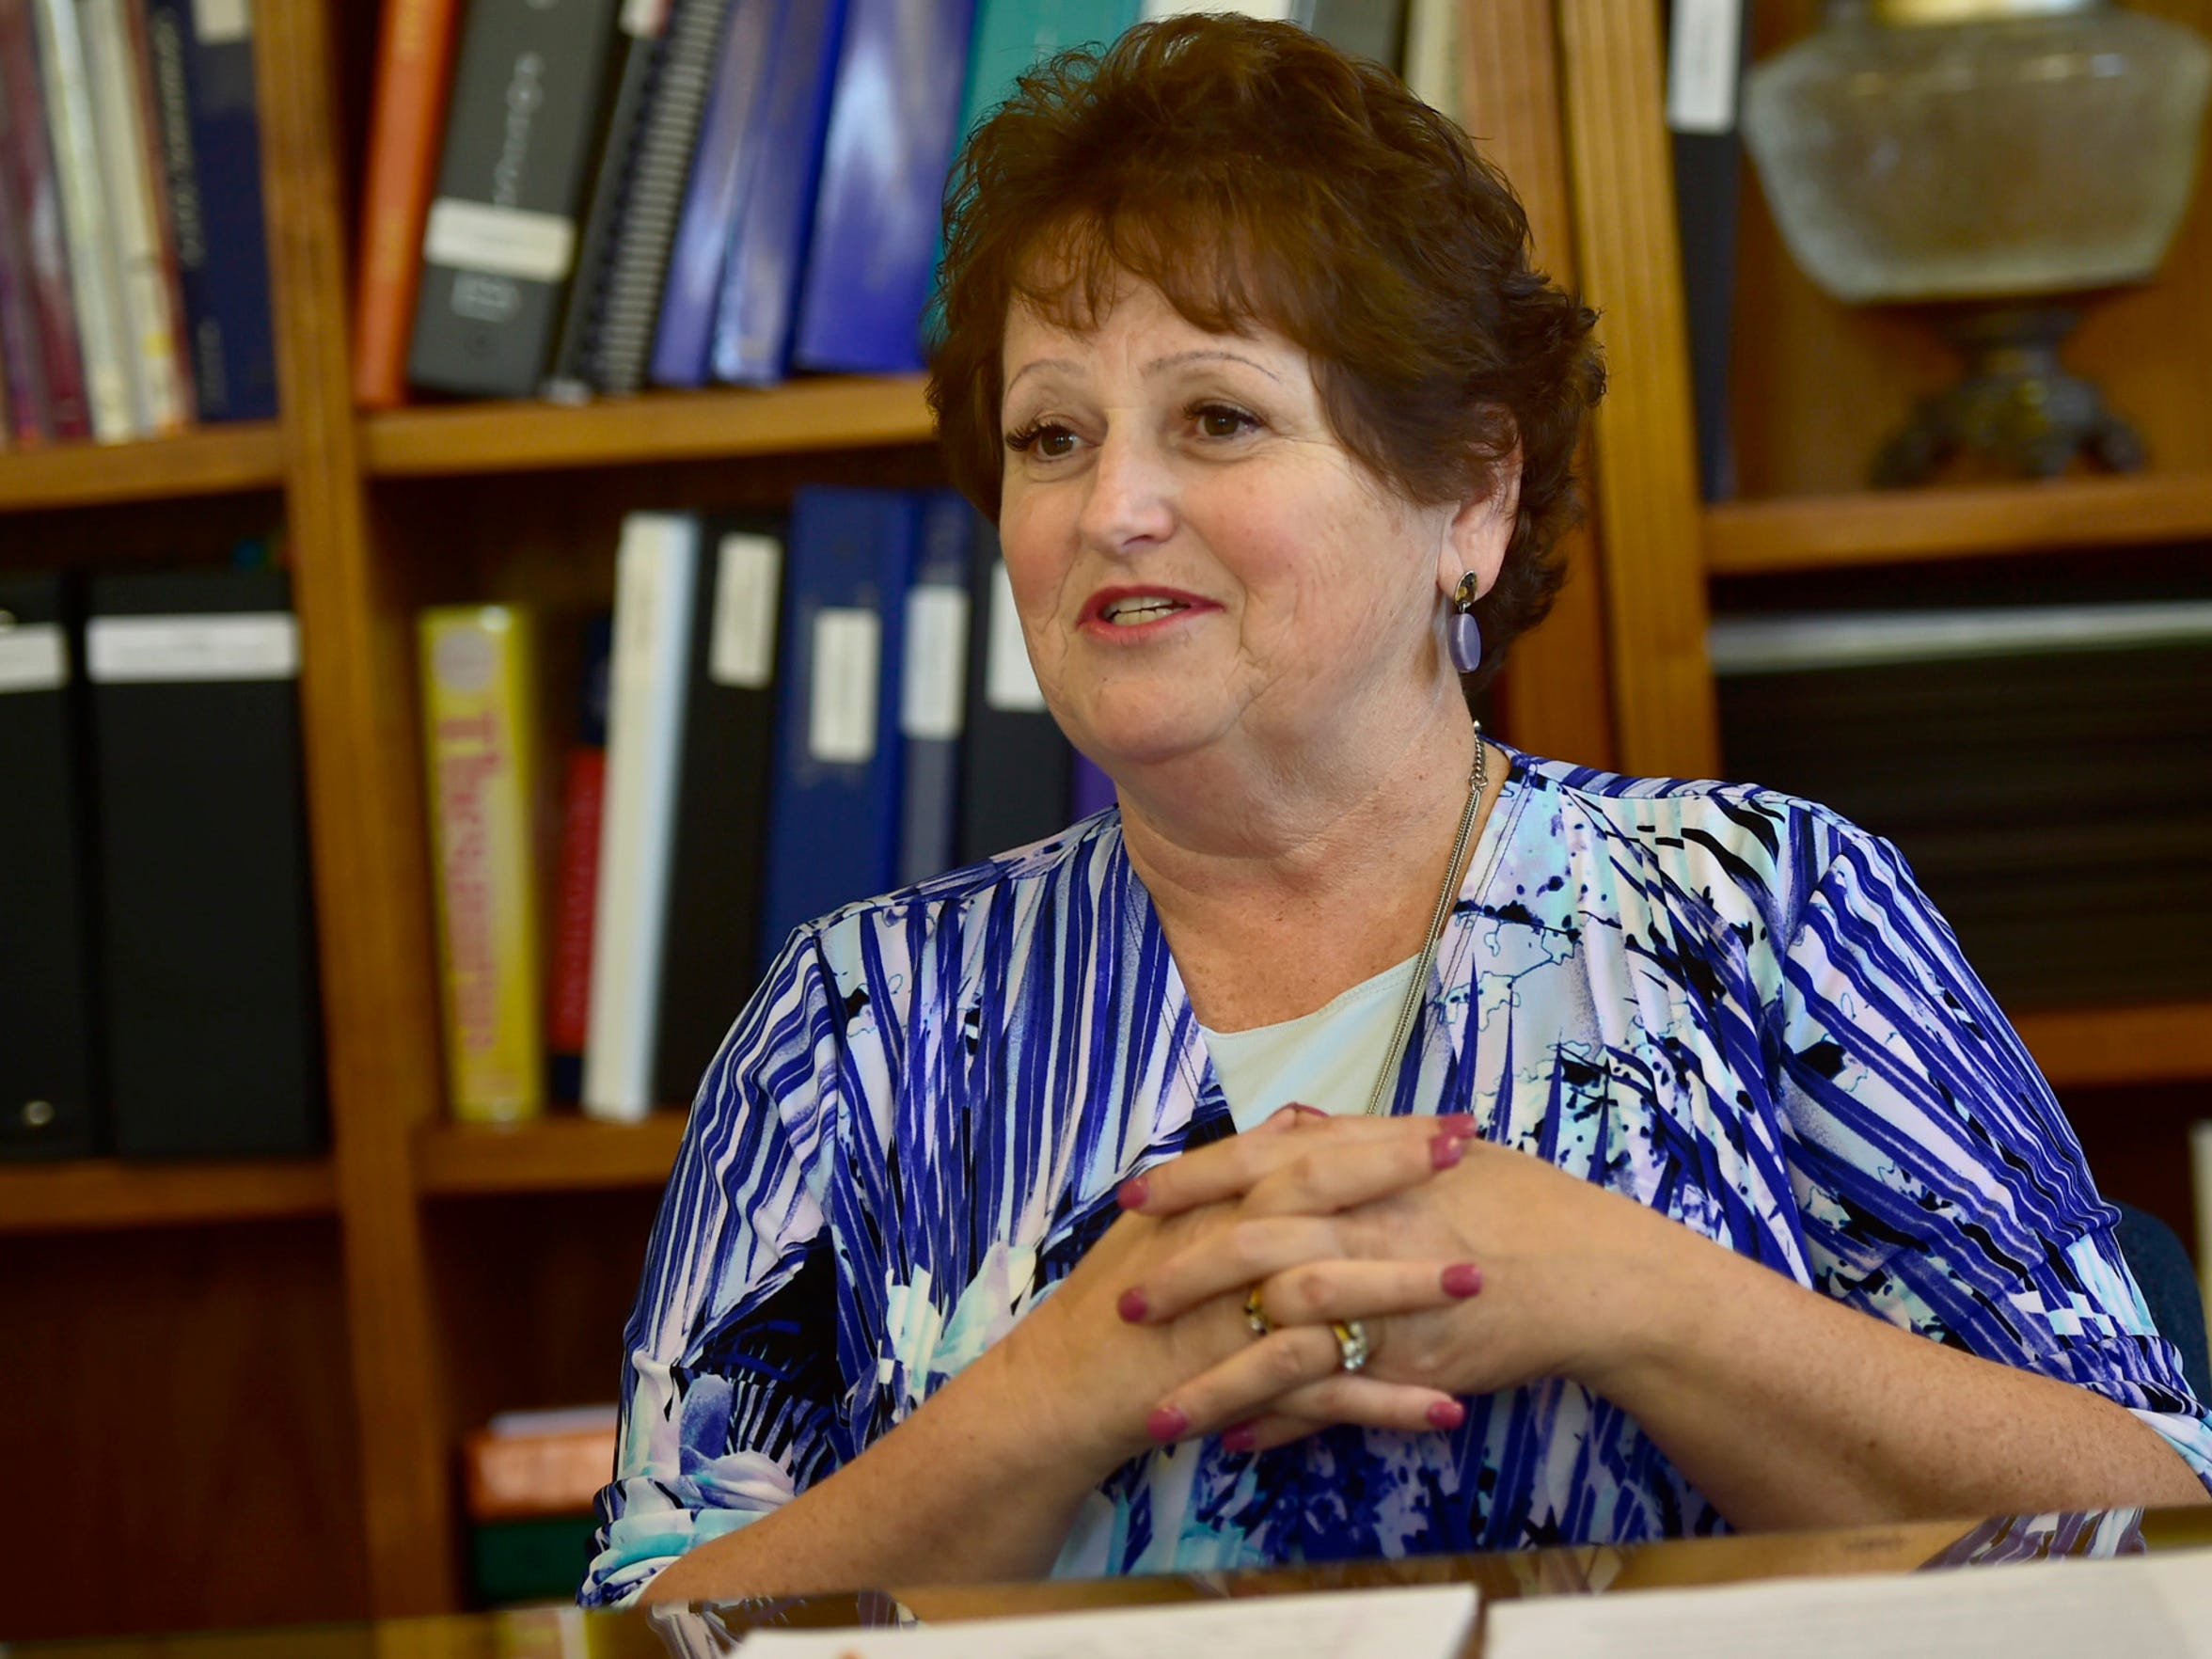 Dr. Sherian Diller, superindent of Waynesboro Area School District, announced on Friday, October 7, 2016, that she will retire from the district on June 30, 2017.